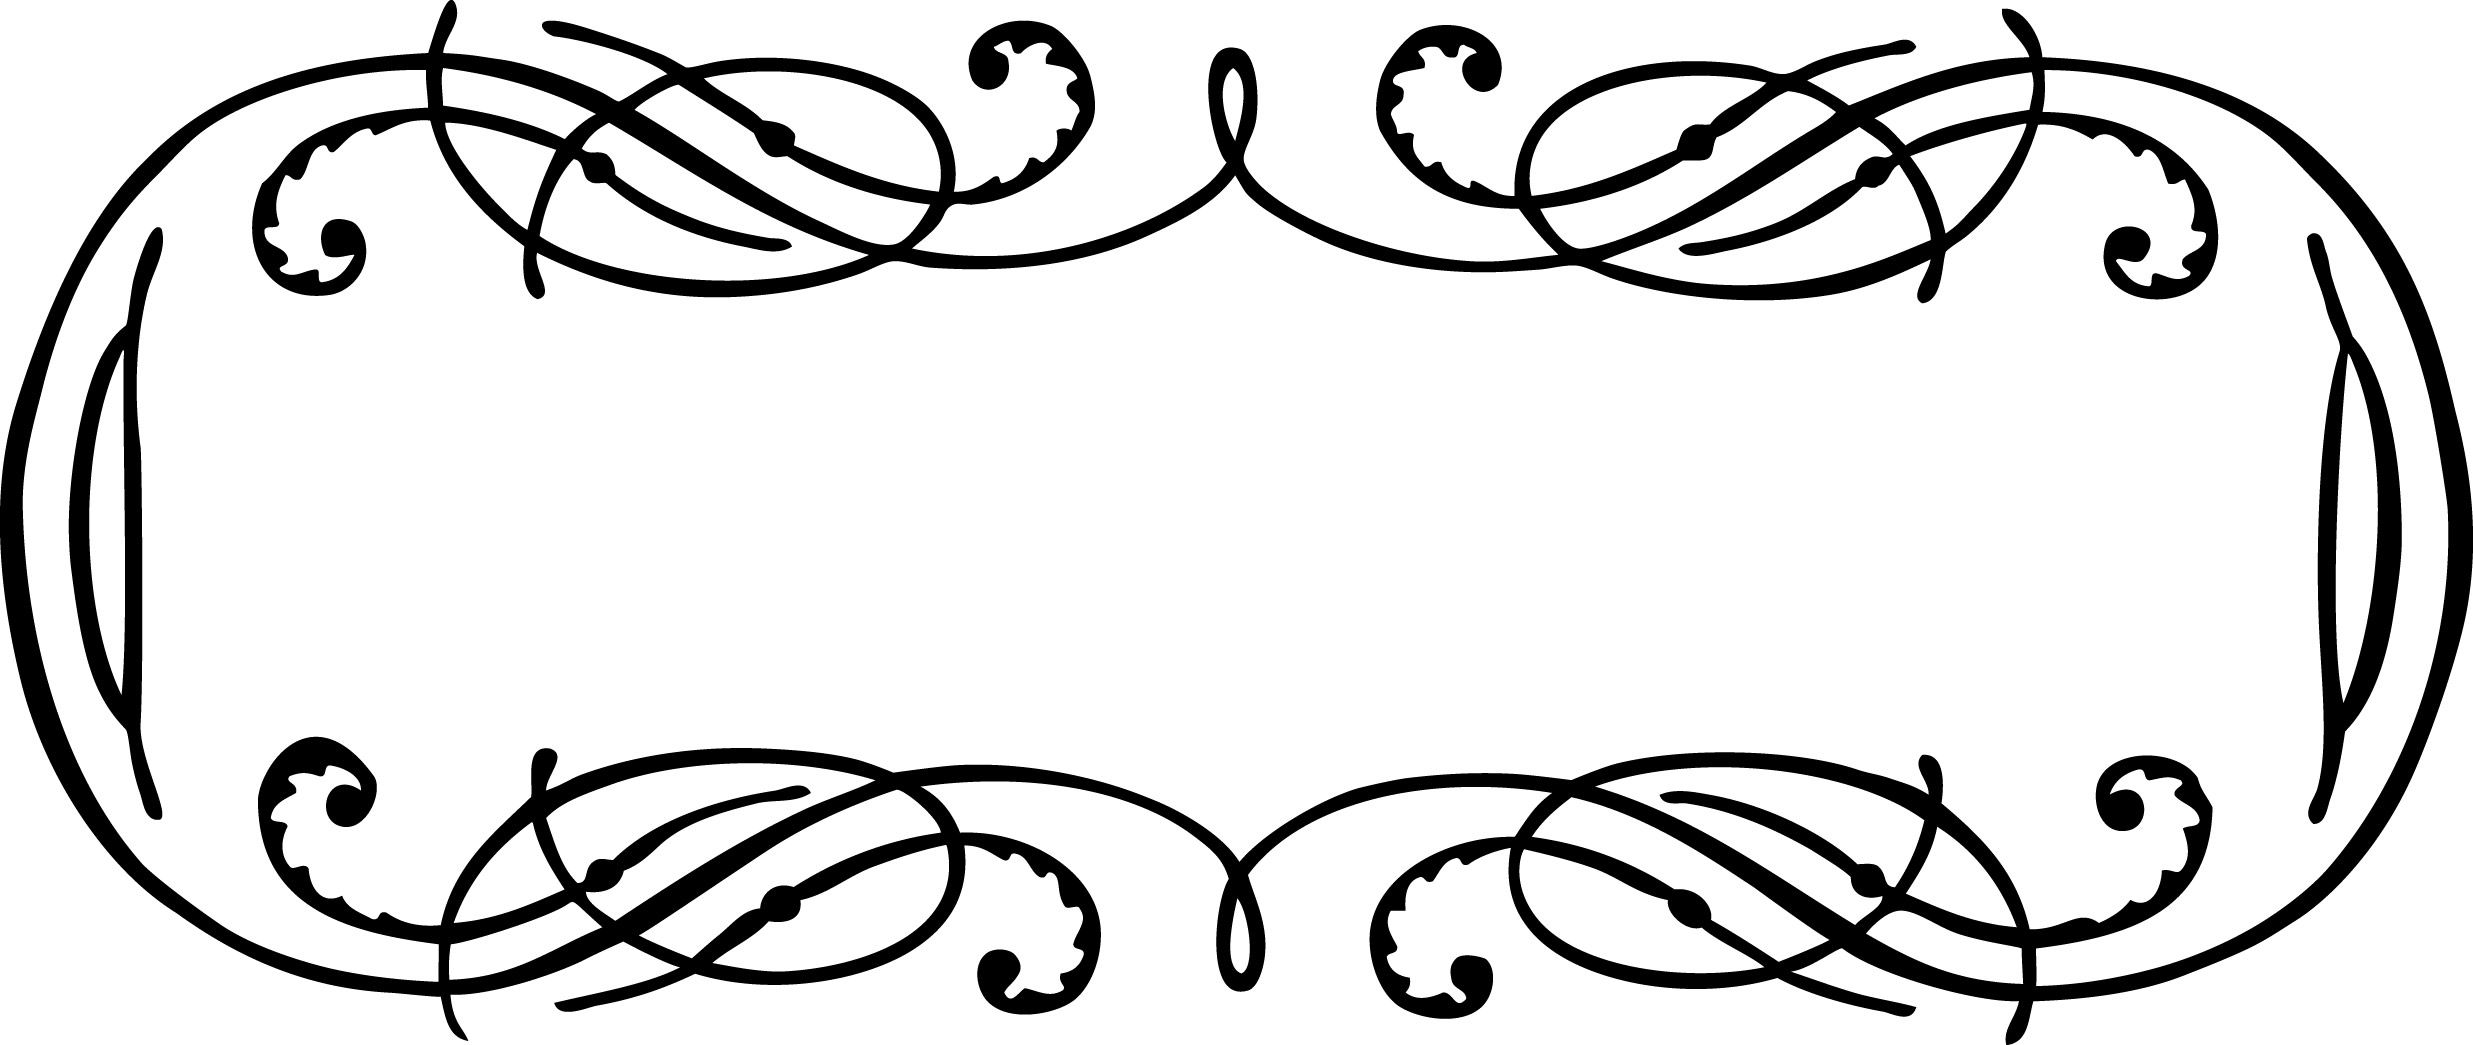 2473x1045 Vintage Border 0 Images About Borders For Labels On Clip Art